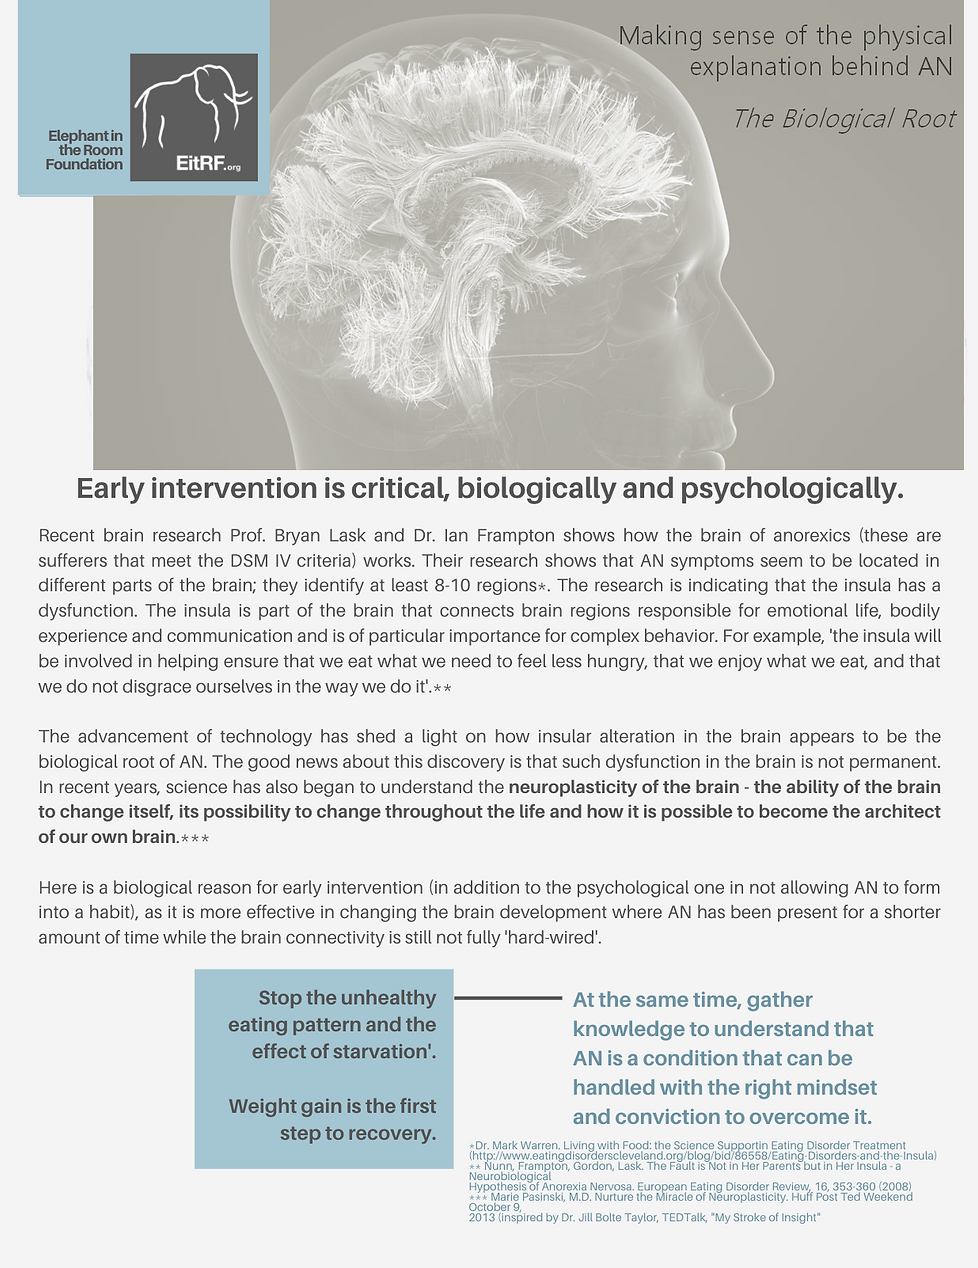 Text explaining Professor Bryan Lask and Doctor Ian Frampton's findings on the neurology of anorexia sufferers.